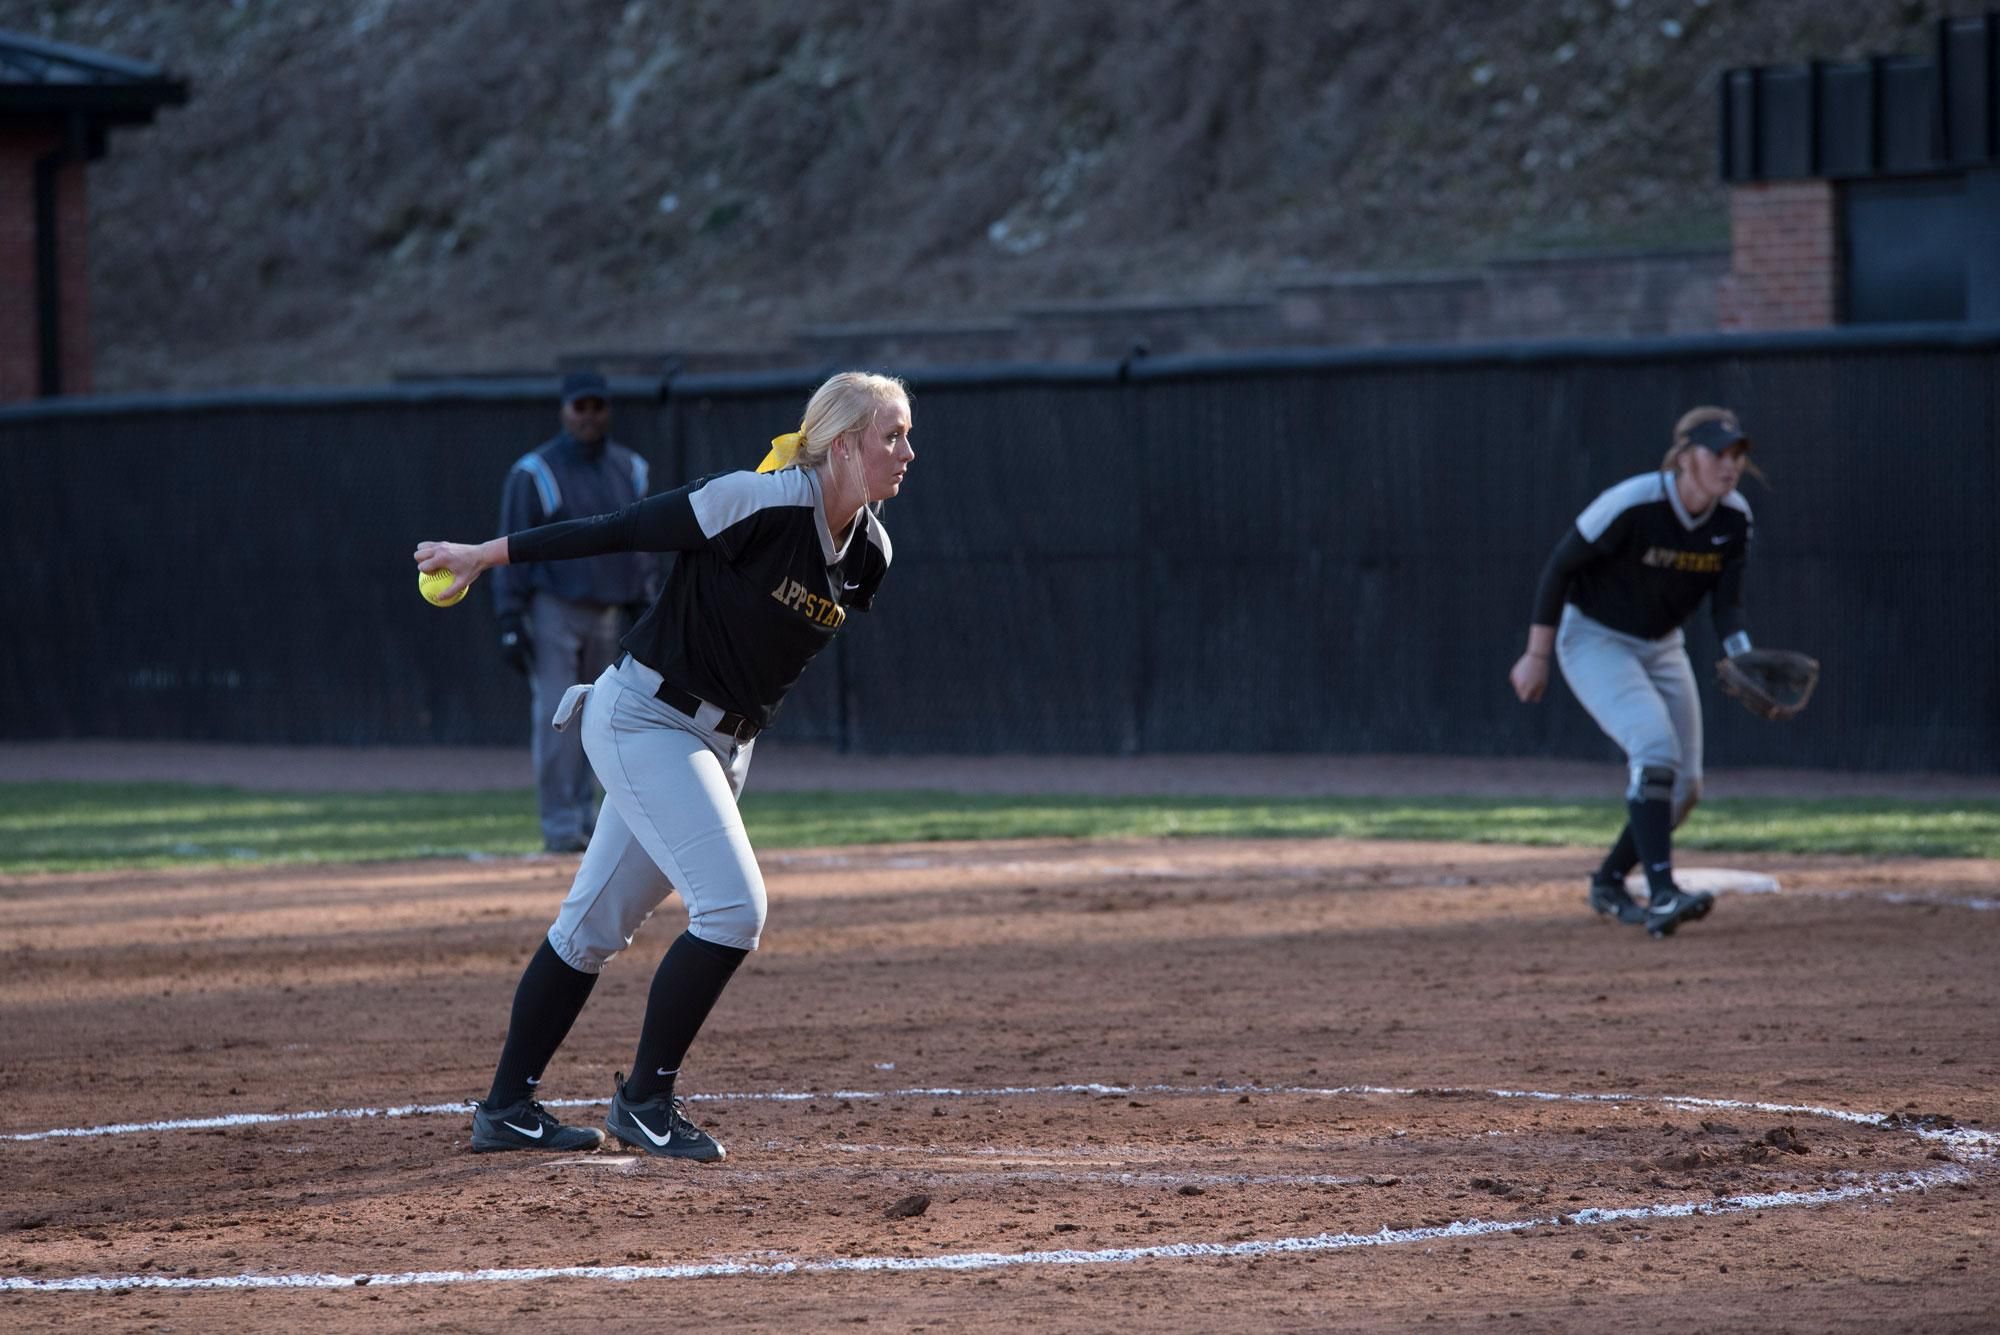 Freshman+Kenzie+Longanecker+begins+her+wind+up+to+pitch+the+ball+during+the+double+header+game+against+UNCG.